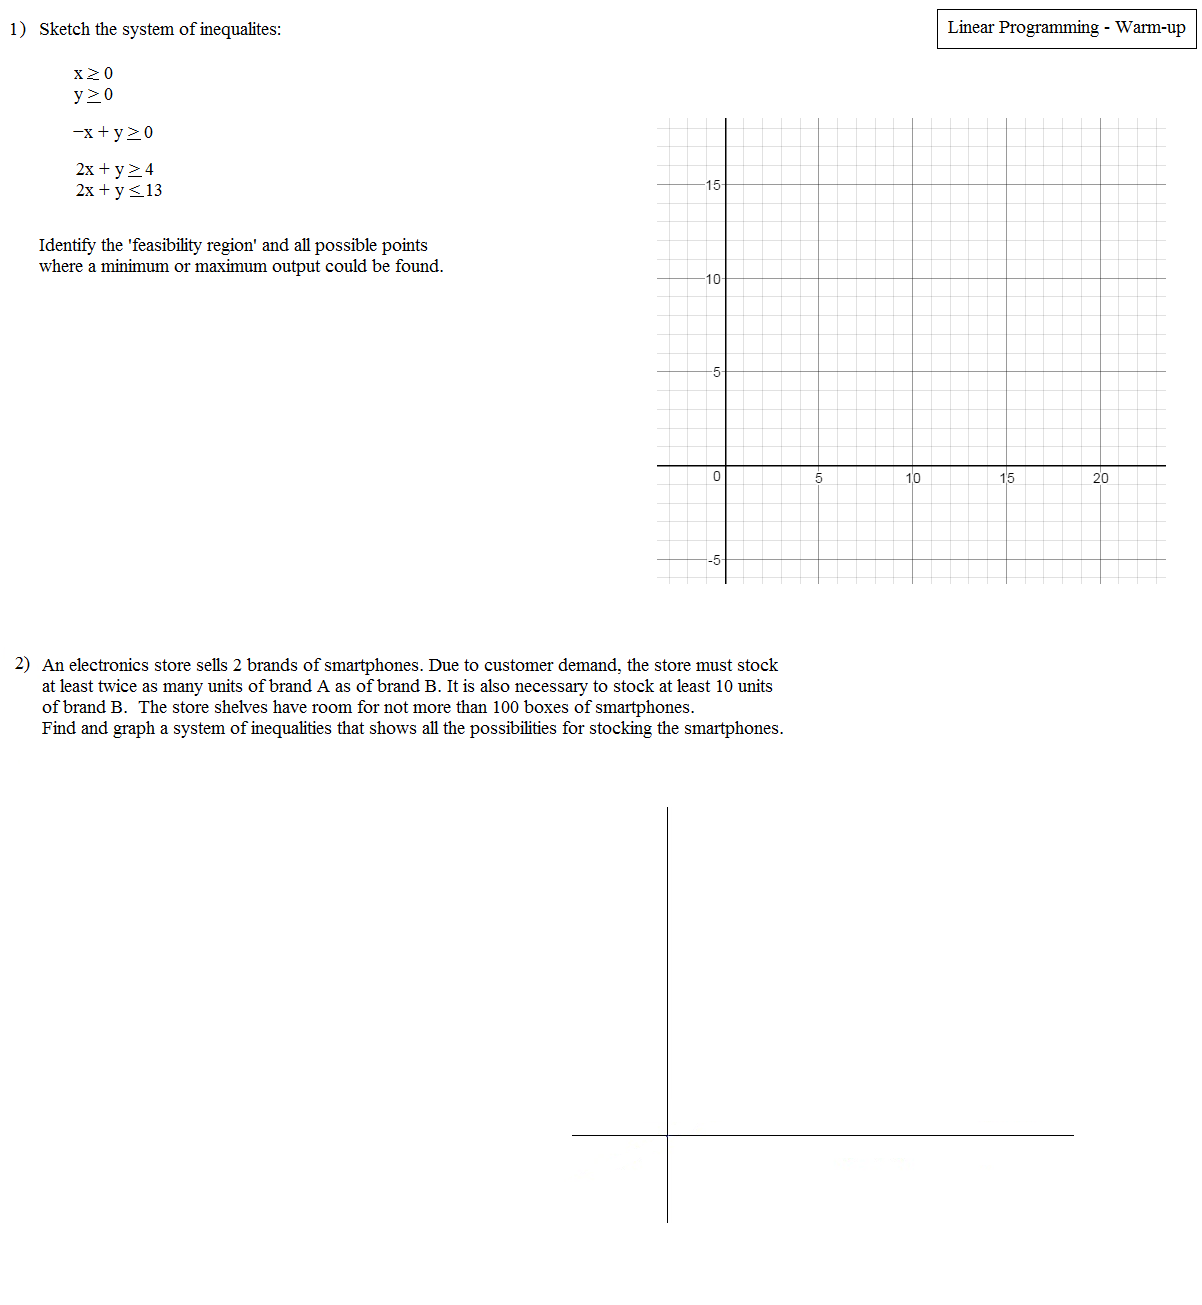 Worksheet Linear Programming Worksheet math plane linear programming optimization worksheet warm up 1